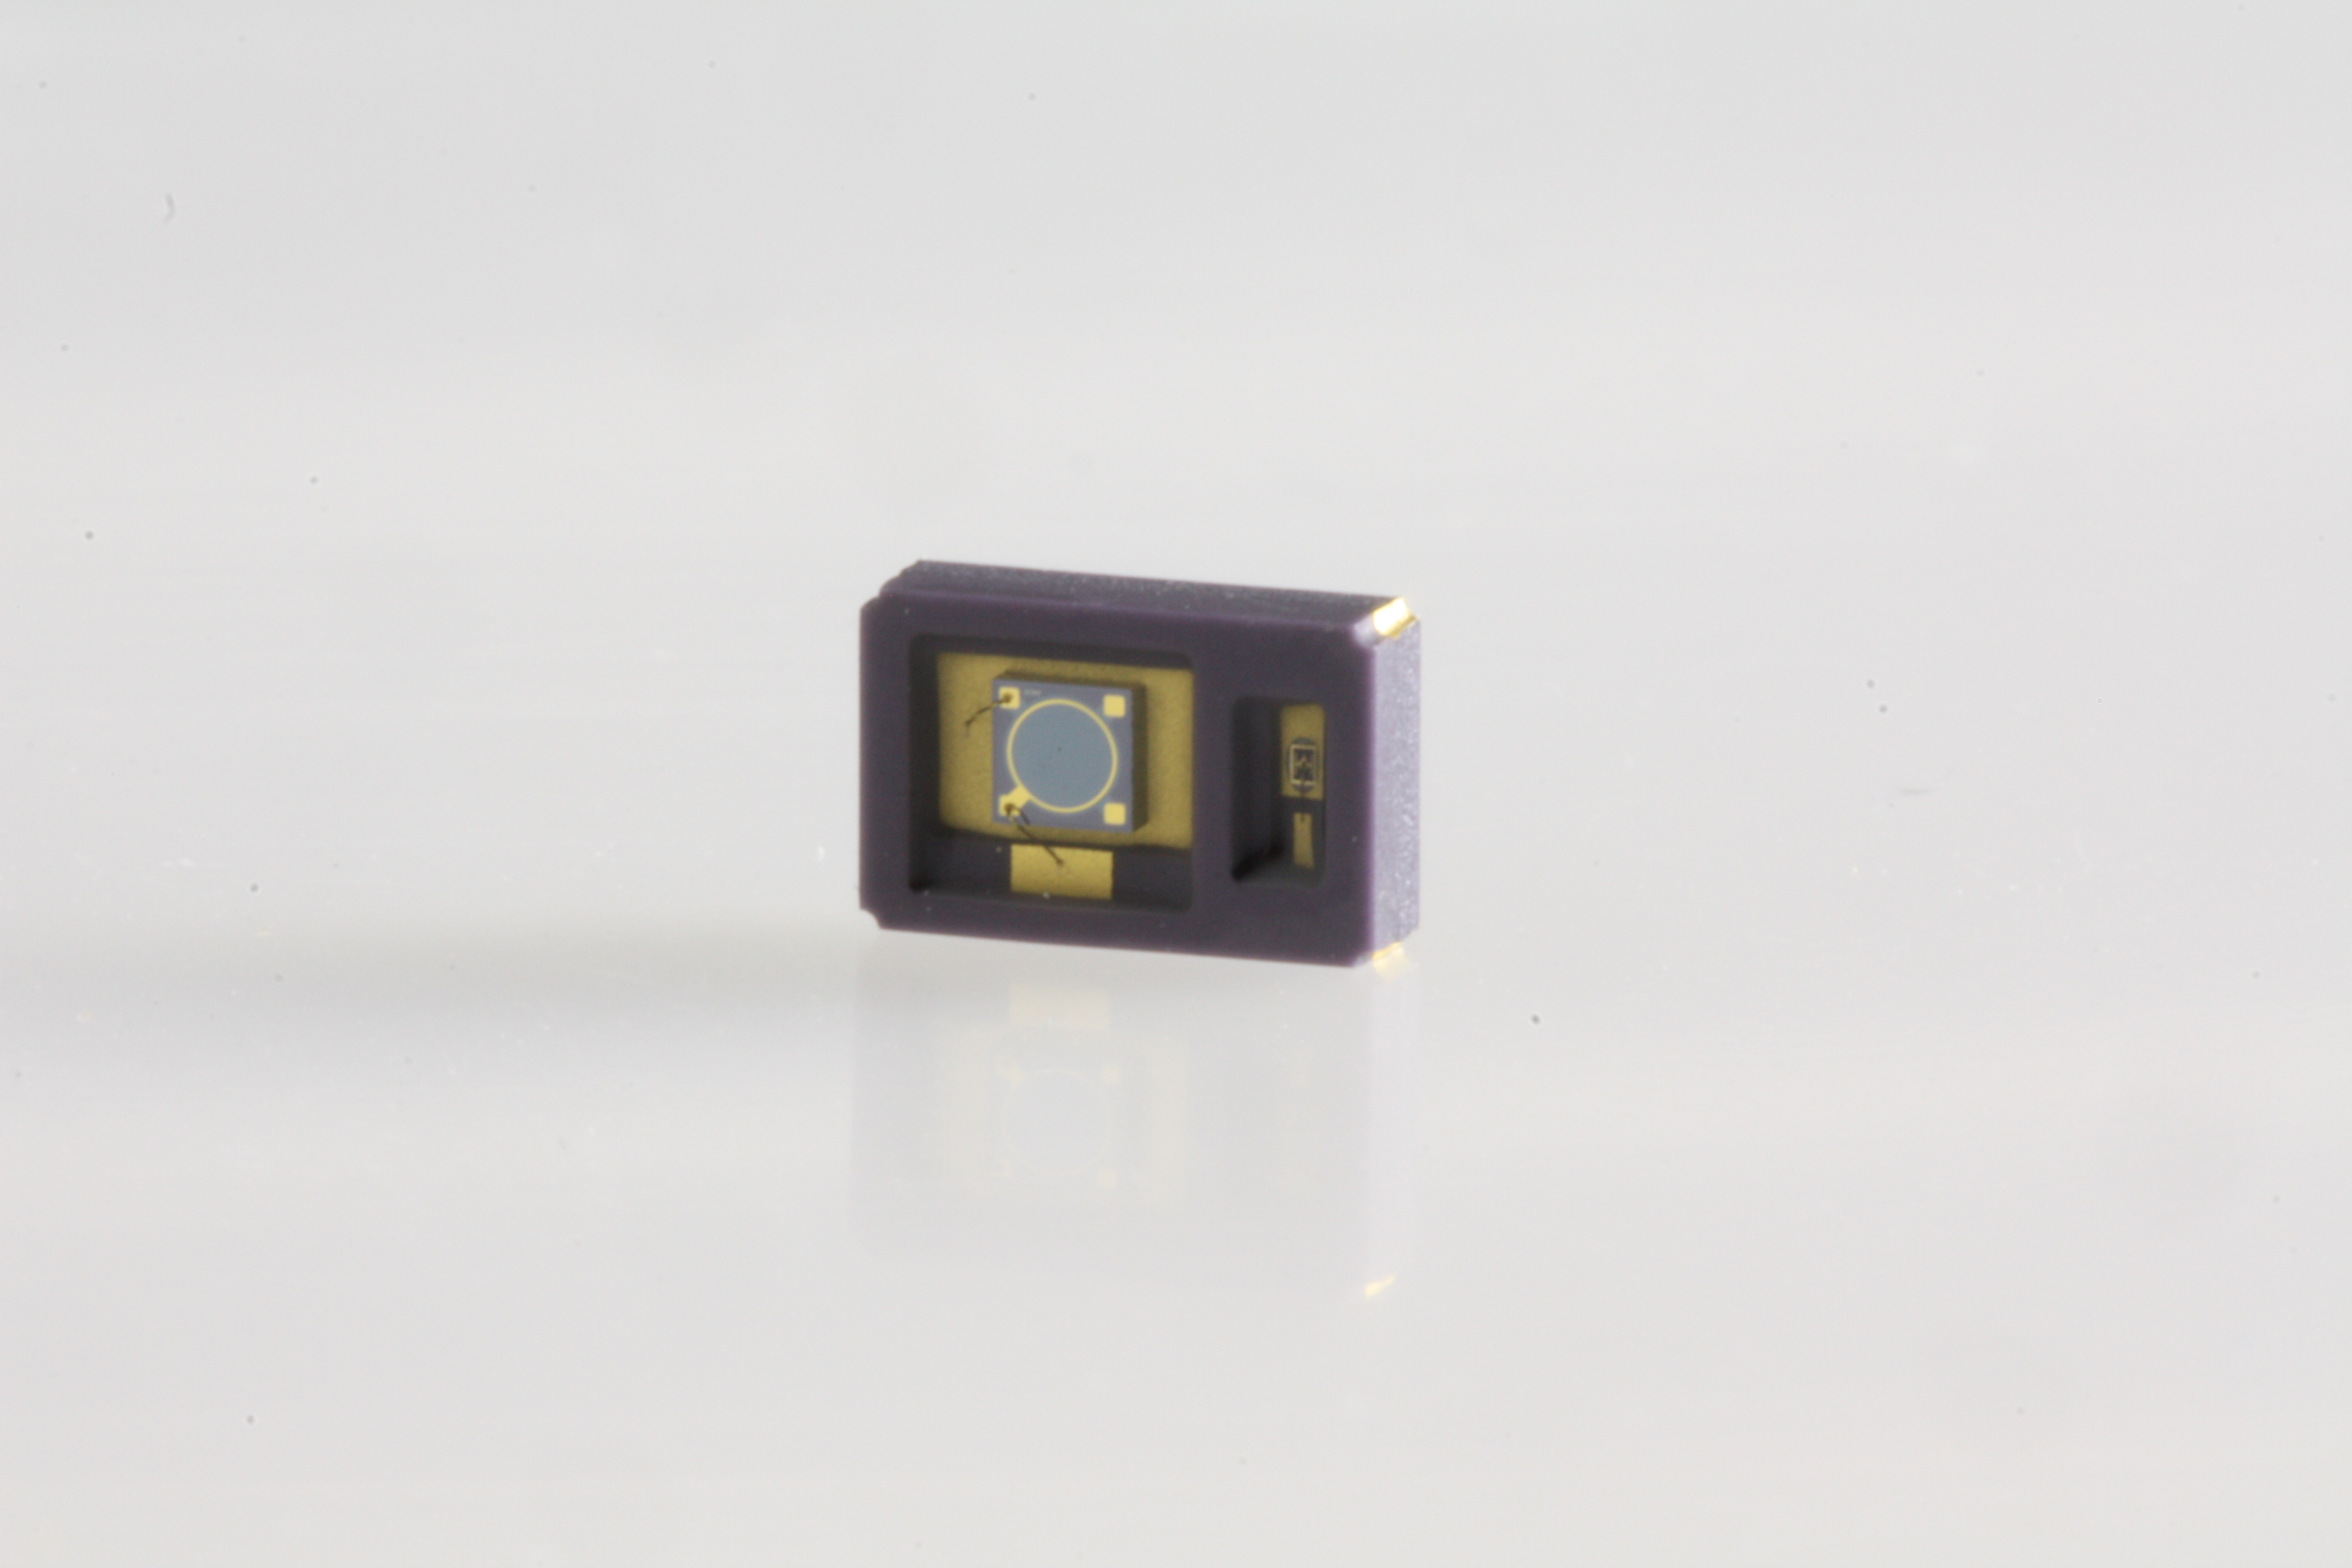 Marktech Optoelectronics Surface Mount Reflective Sensor